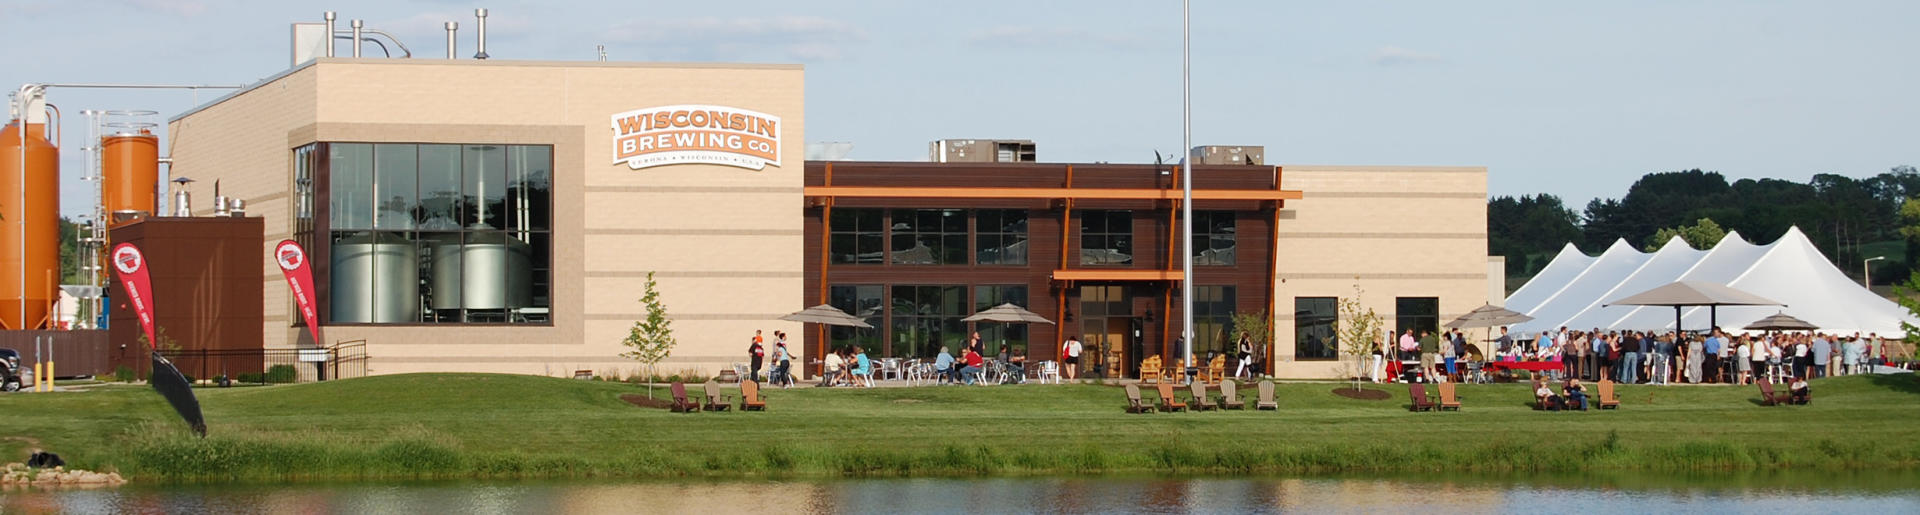 Wisconsin Brewing Company, Events & Tours